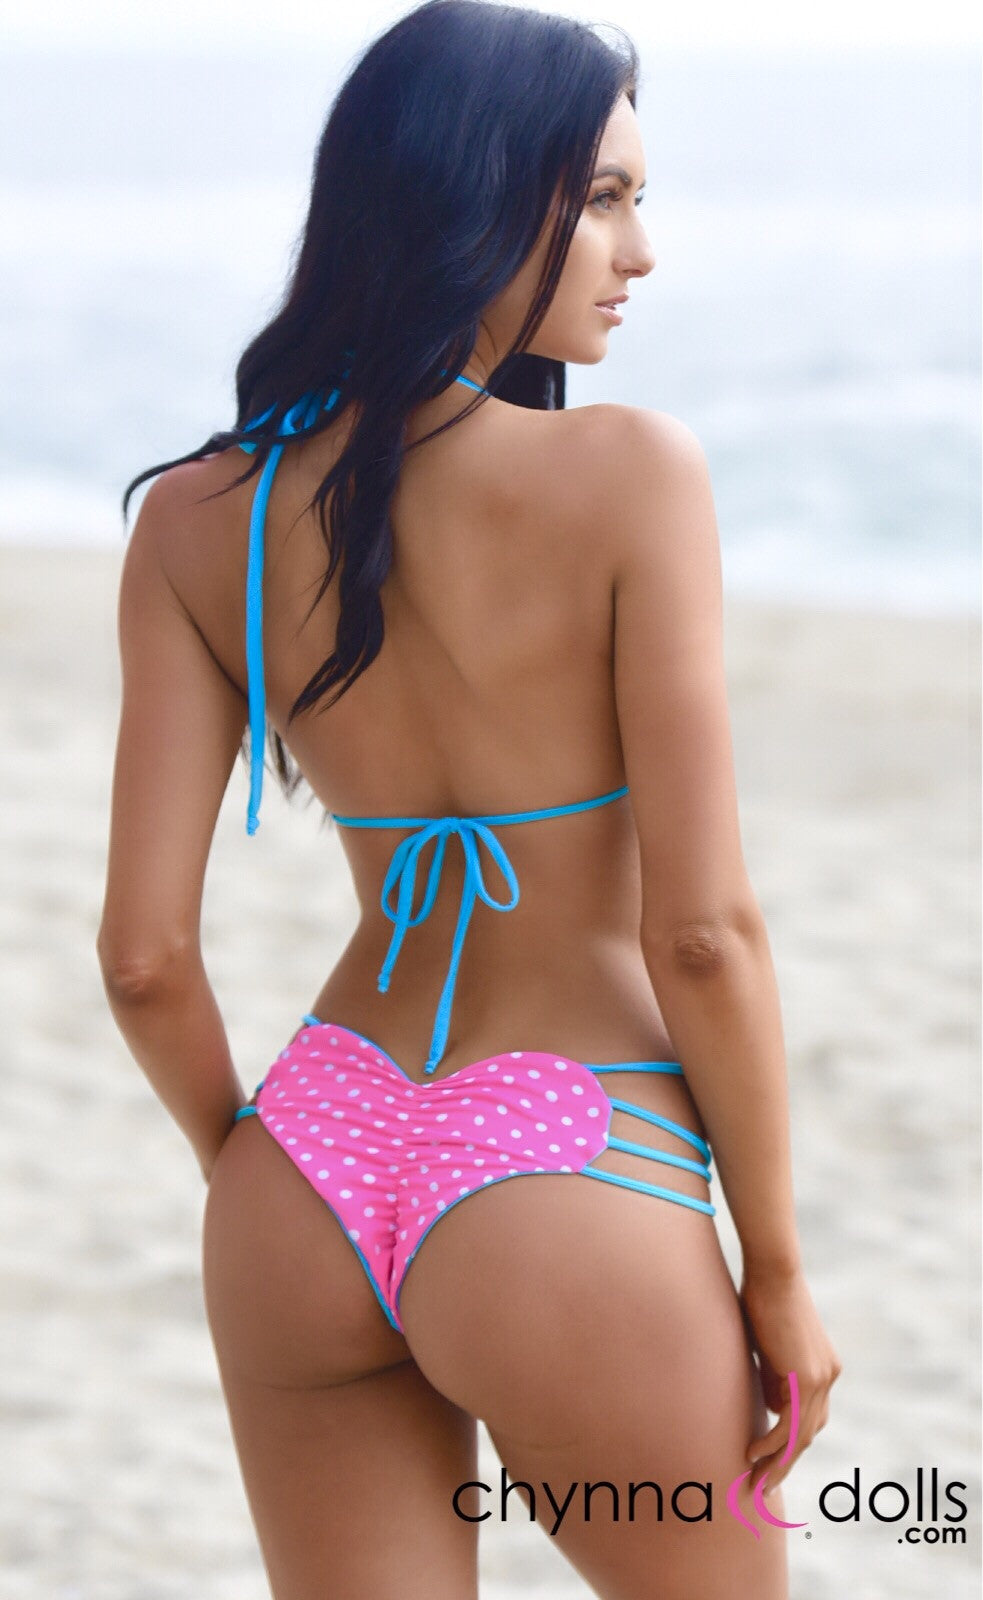 Heart Cake: Heart Shaped Reversible Bikini in Aqua x Pink Polka Dots